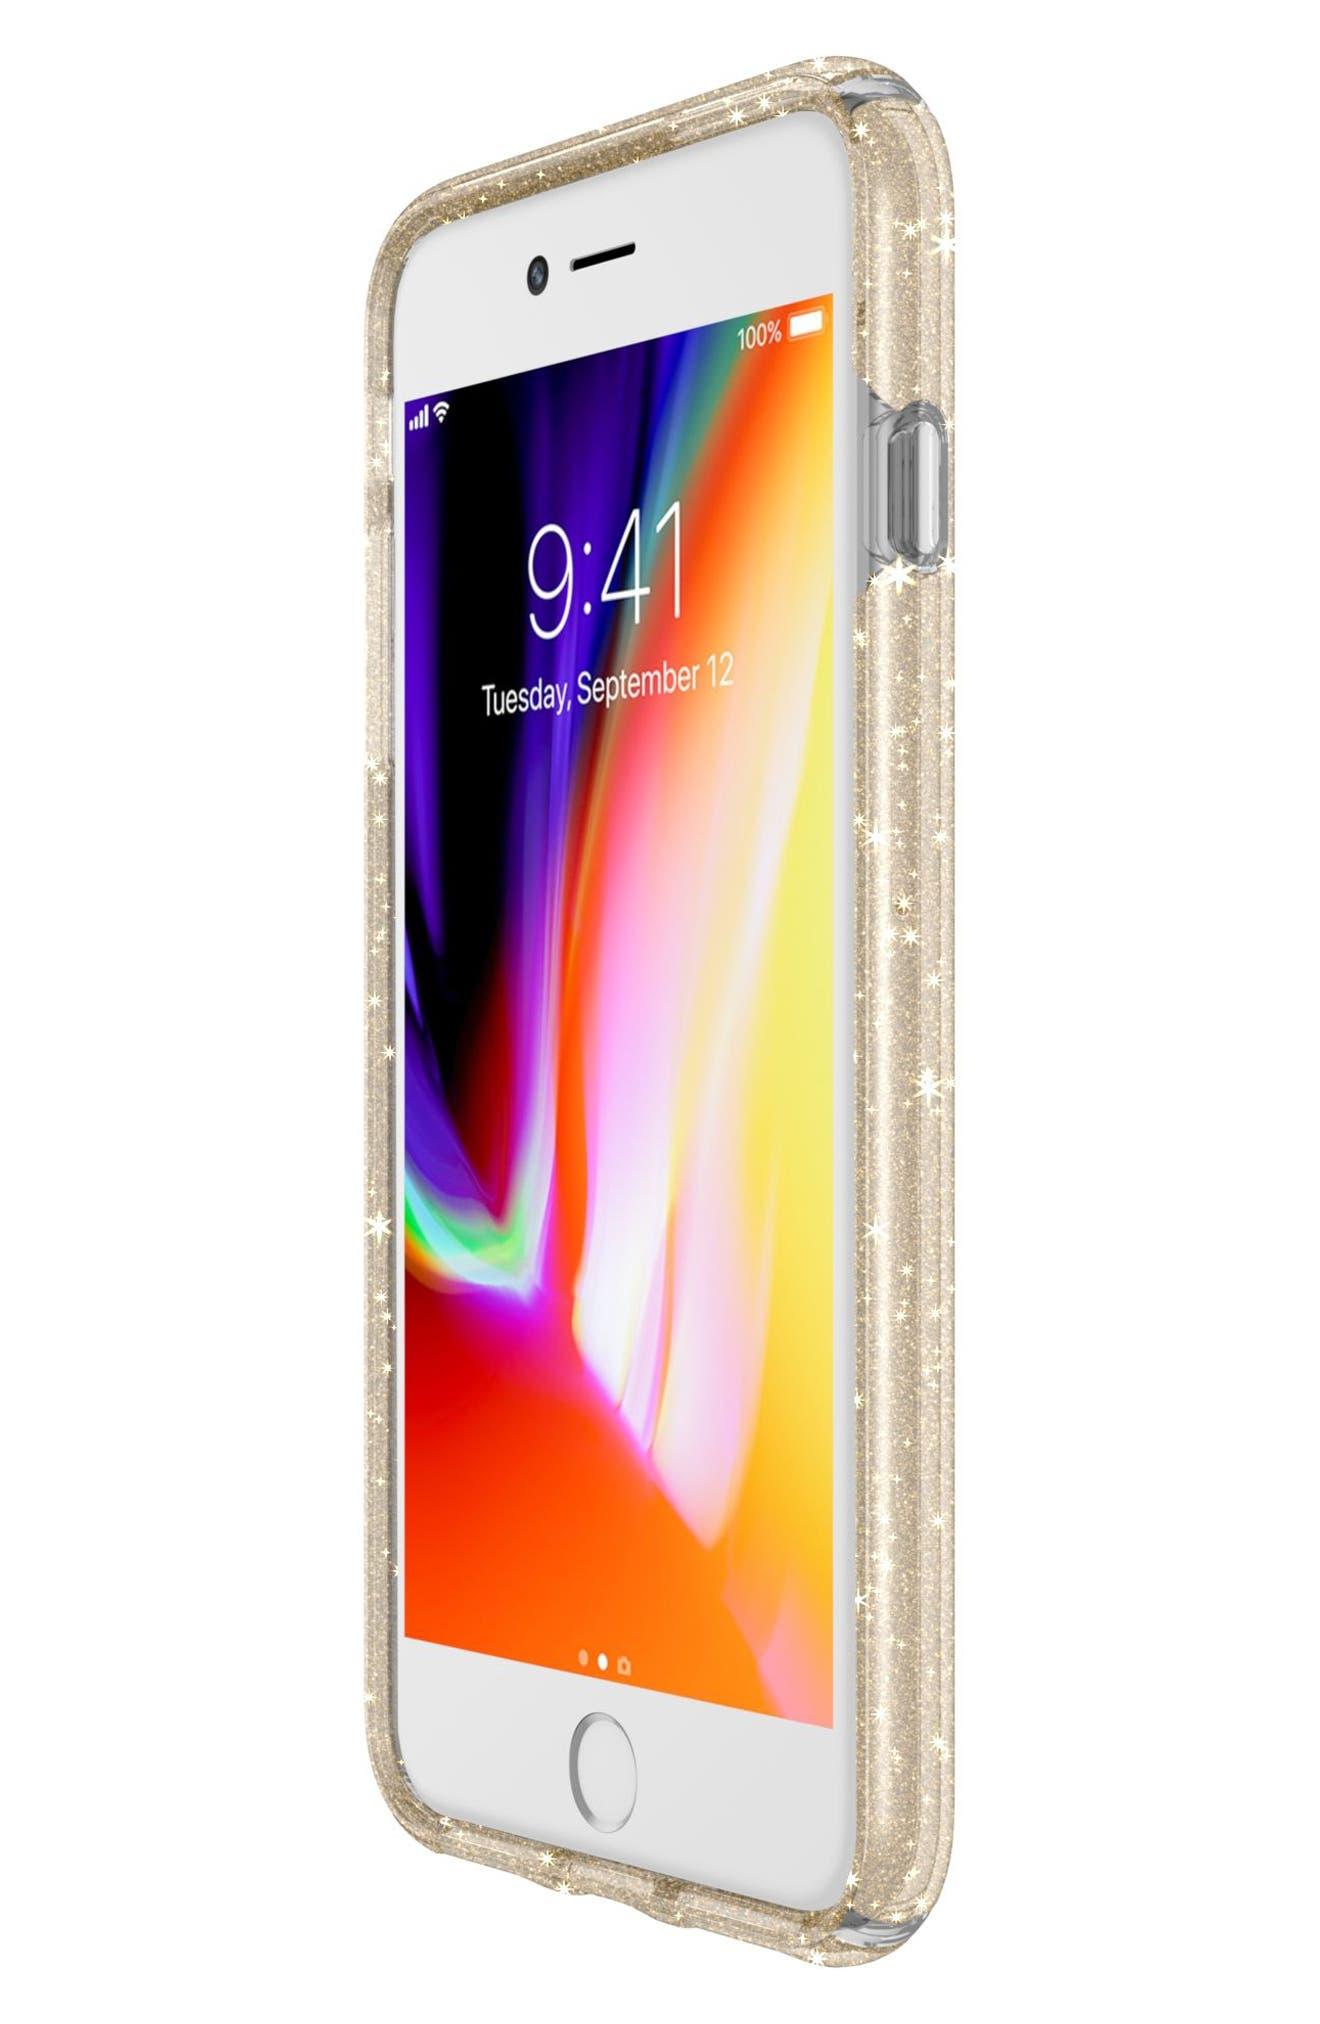 iPhone 6/6s/7/8 Plus Case,                             Alternate thumbnail 7, color,                             Clear With Gold Glitter/ Clear